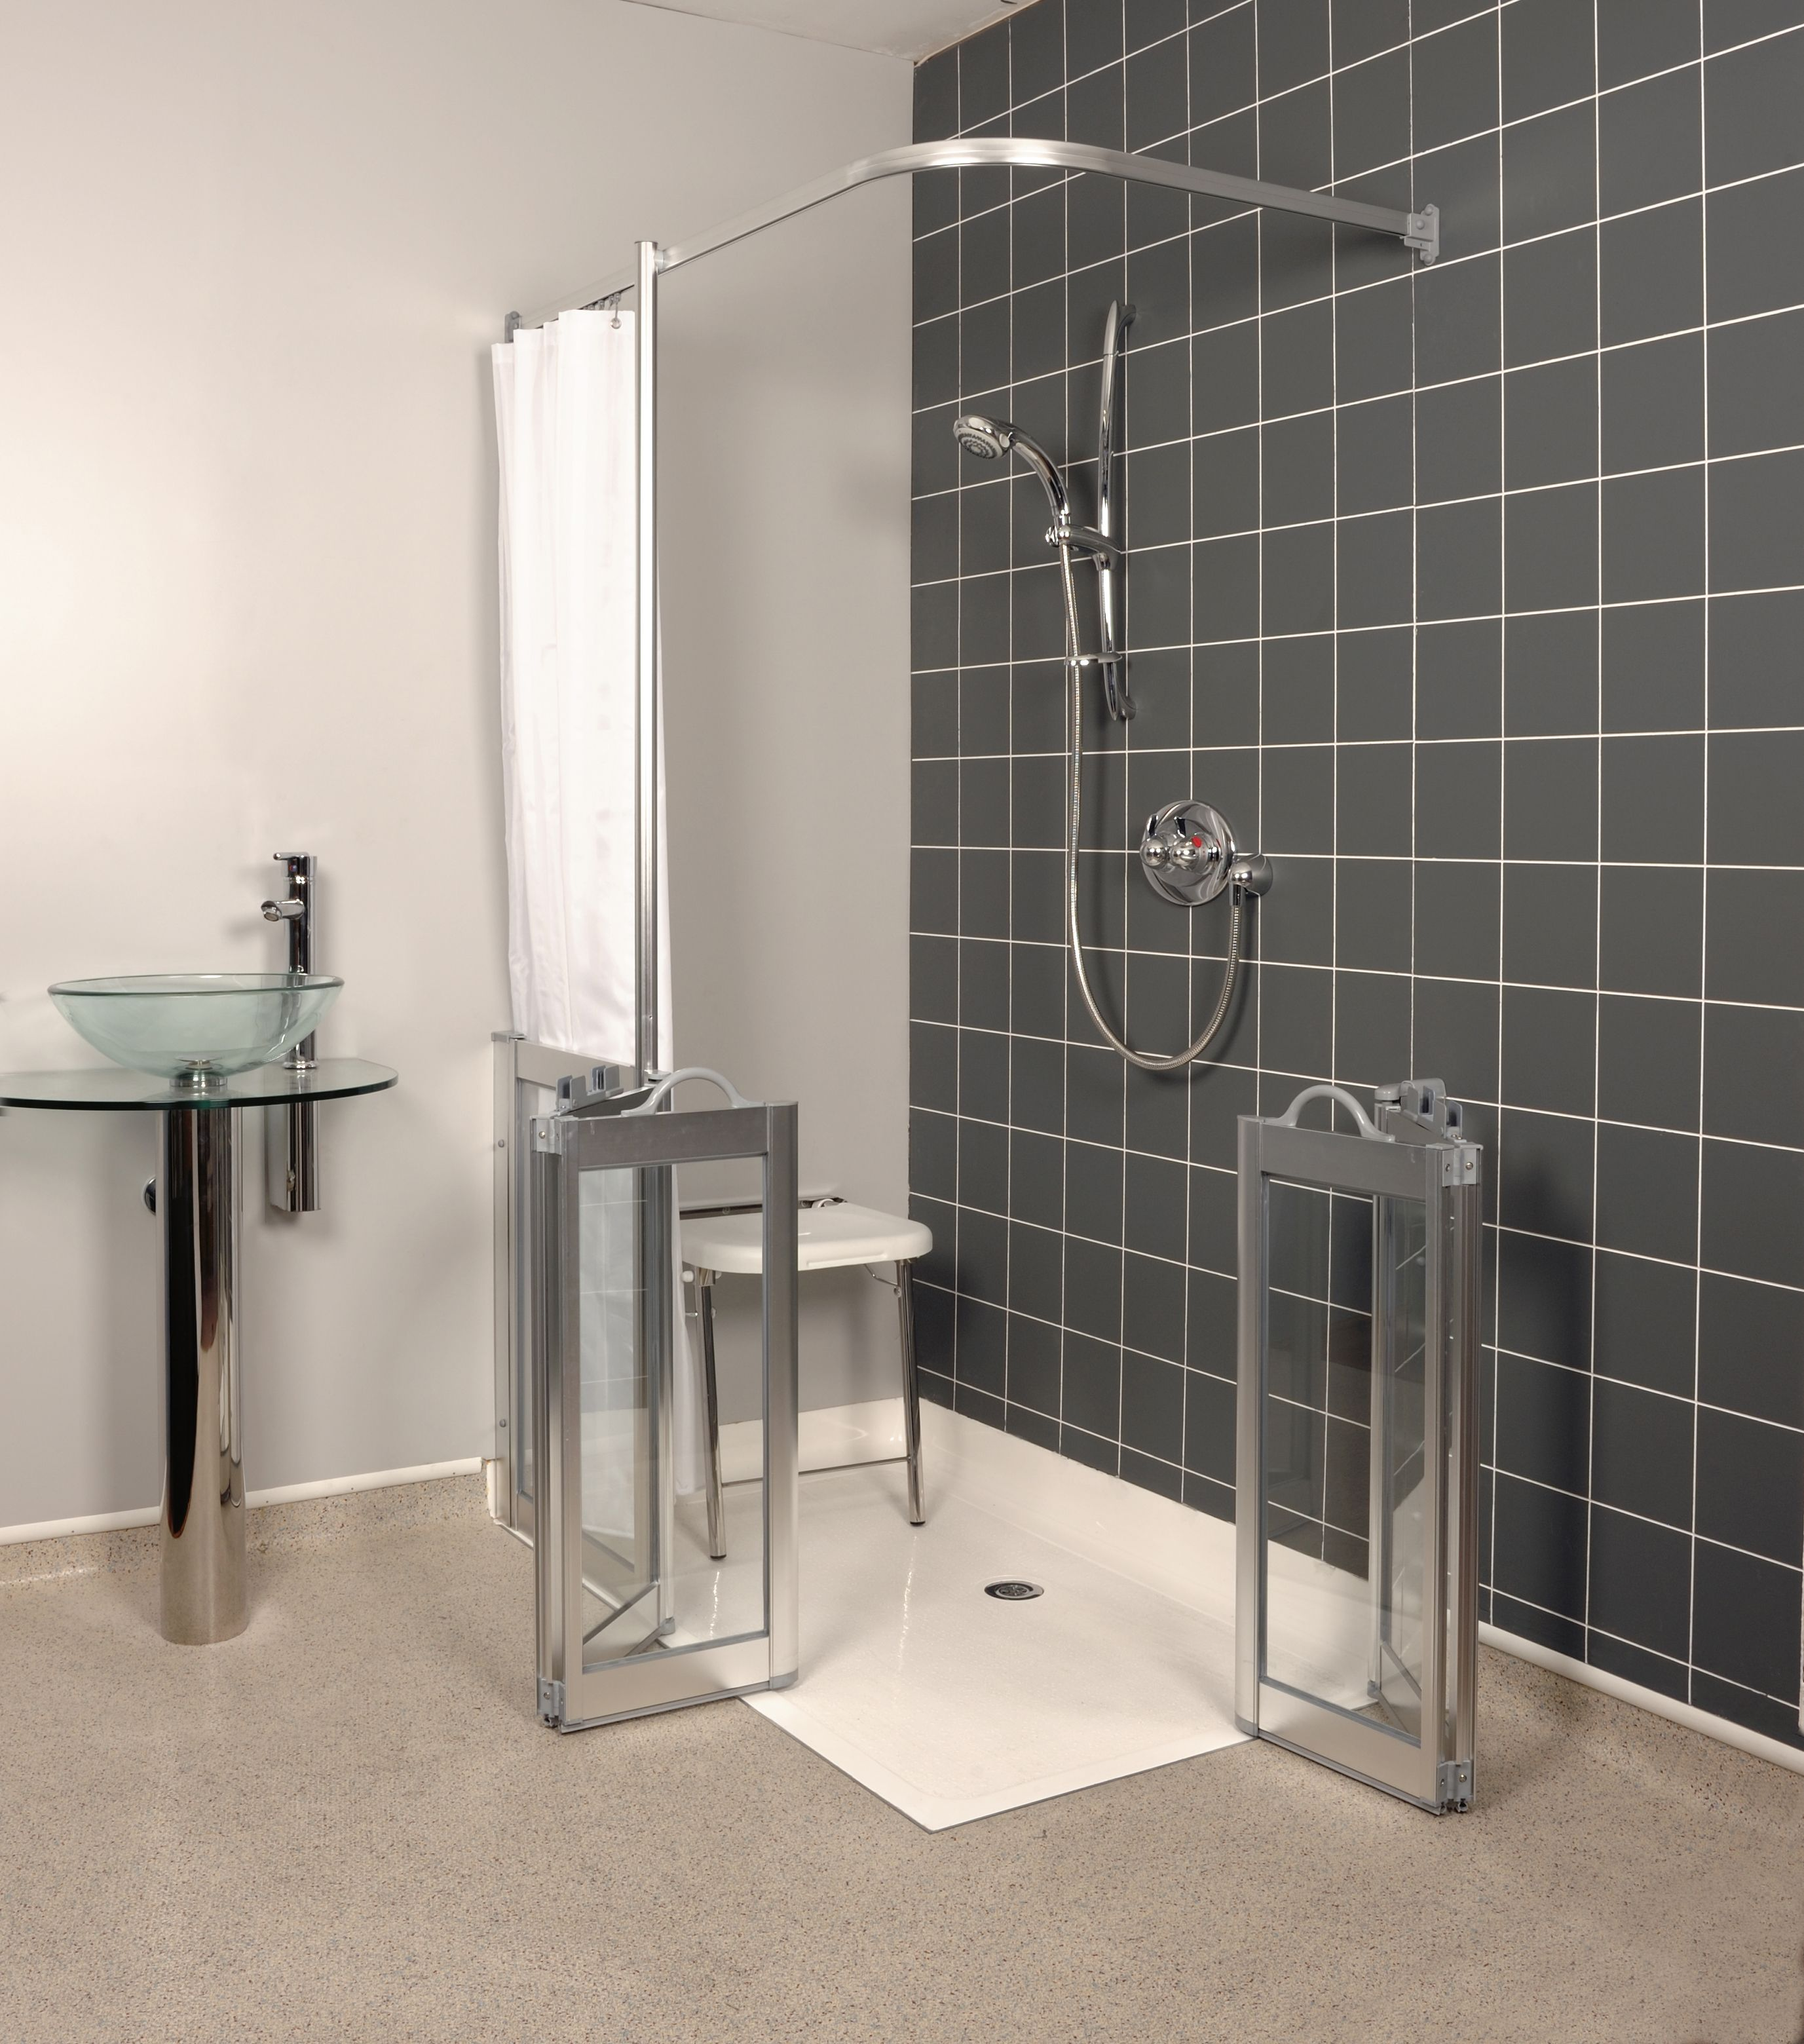 Disabled Walk In Shower And Bathroom #DisabledShowers U003eu003e Learn More At  Http://www.disabledbathrooms.org/handicap Shower Stalls.html